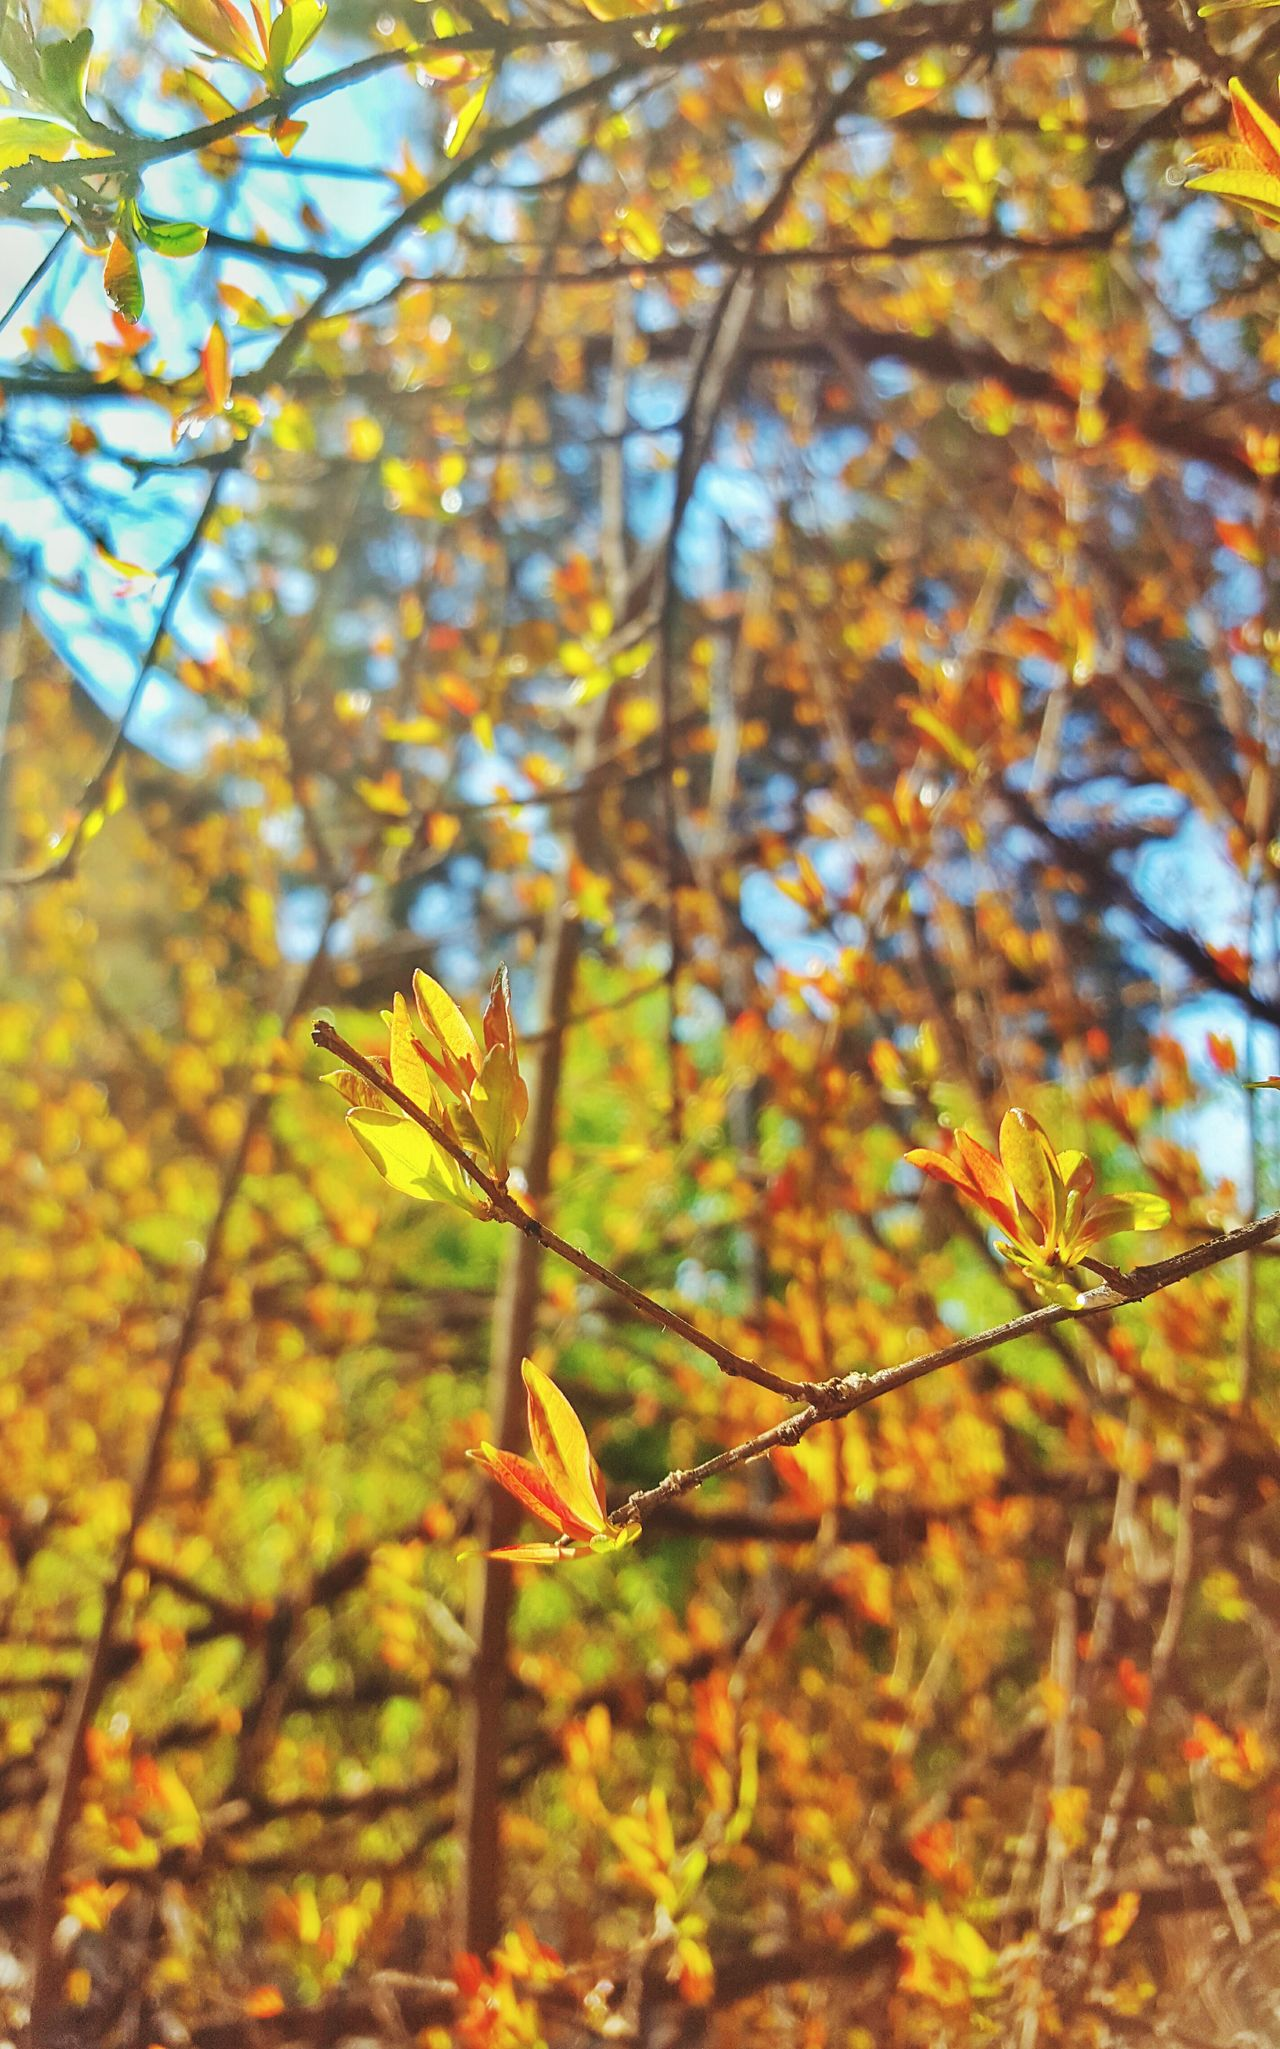 Spring flowers Nature Branch Beauty In Nature Focus On Foreground Close-up No People Growth Change Day Sunlight Plant Outdoors Leaf Autumn Fragility Tree Animal Themes Freshness Natural Peaceful Nature_collection Scenics Tranquility Beautiful Outdoor Photography